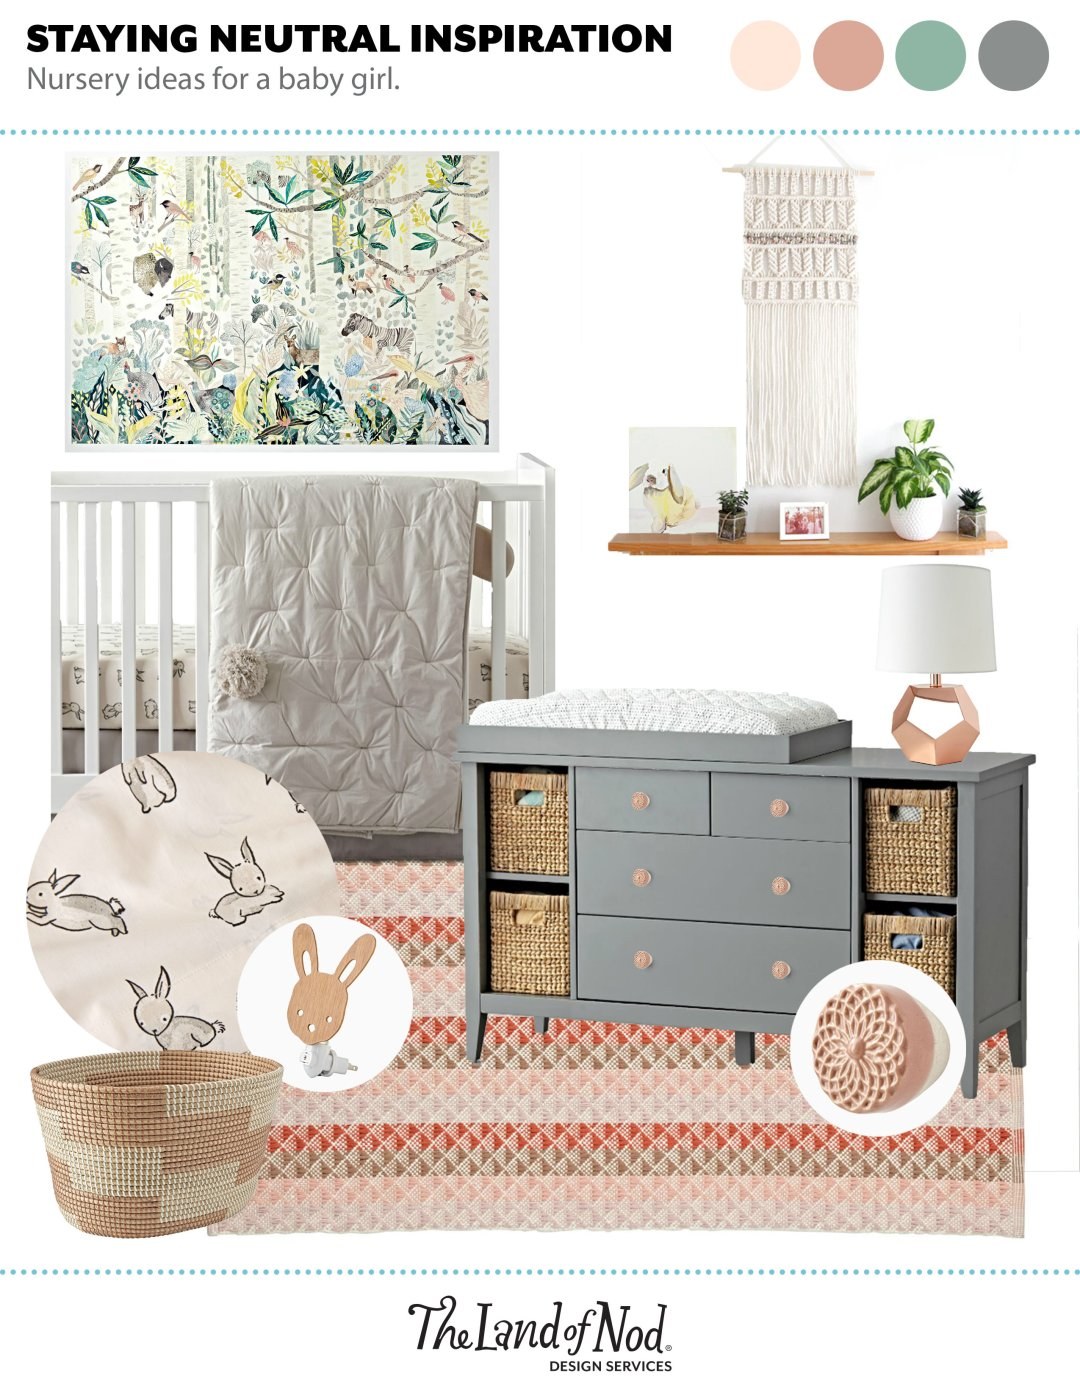 Trend Roundup: Staying Neutral